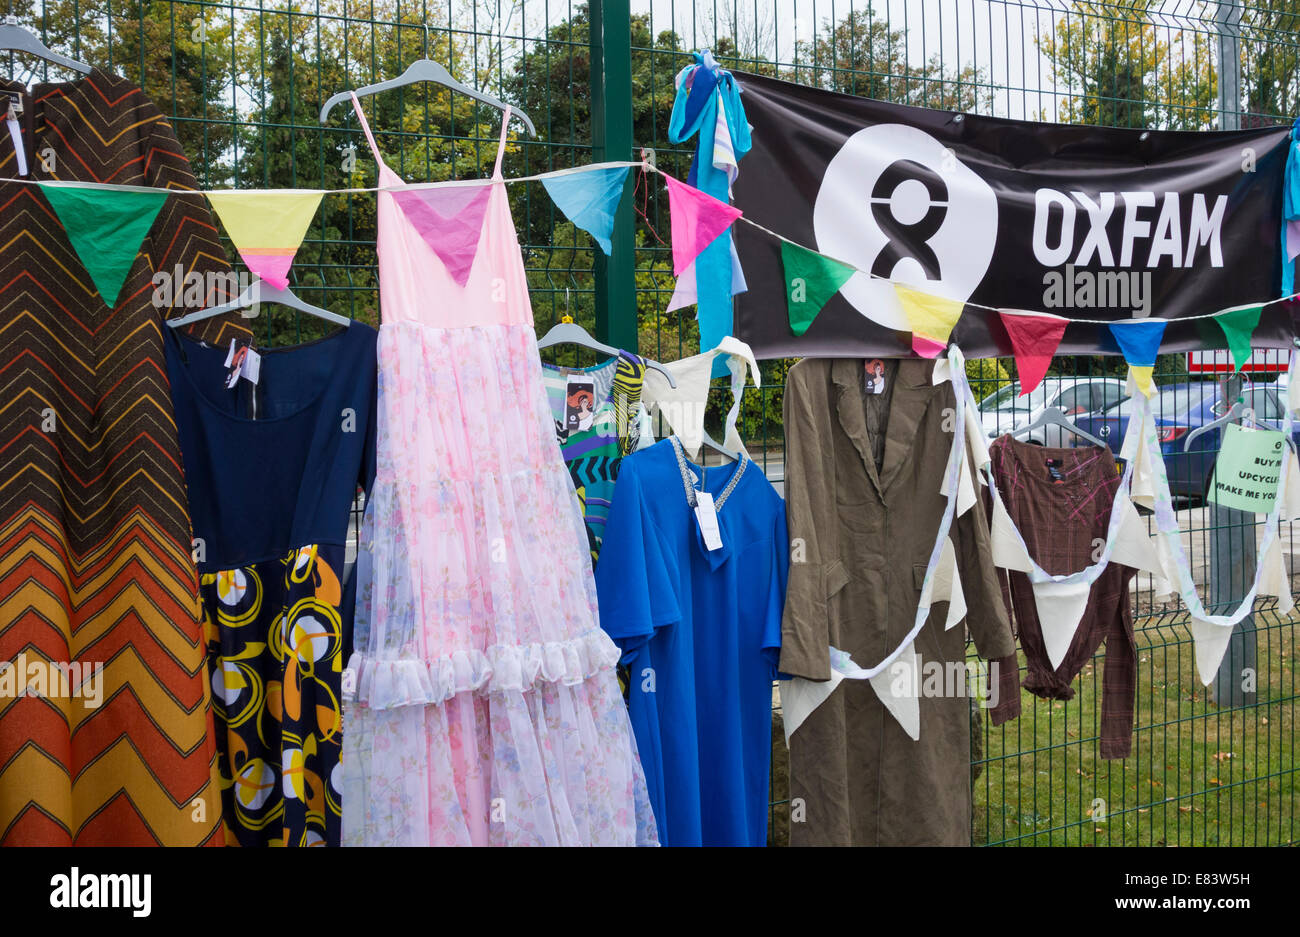 Oxfam clothes stall at The Festival of Thrift, Lingfield Point, Darlington, England, UK - Stock Image